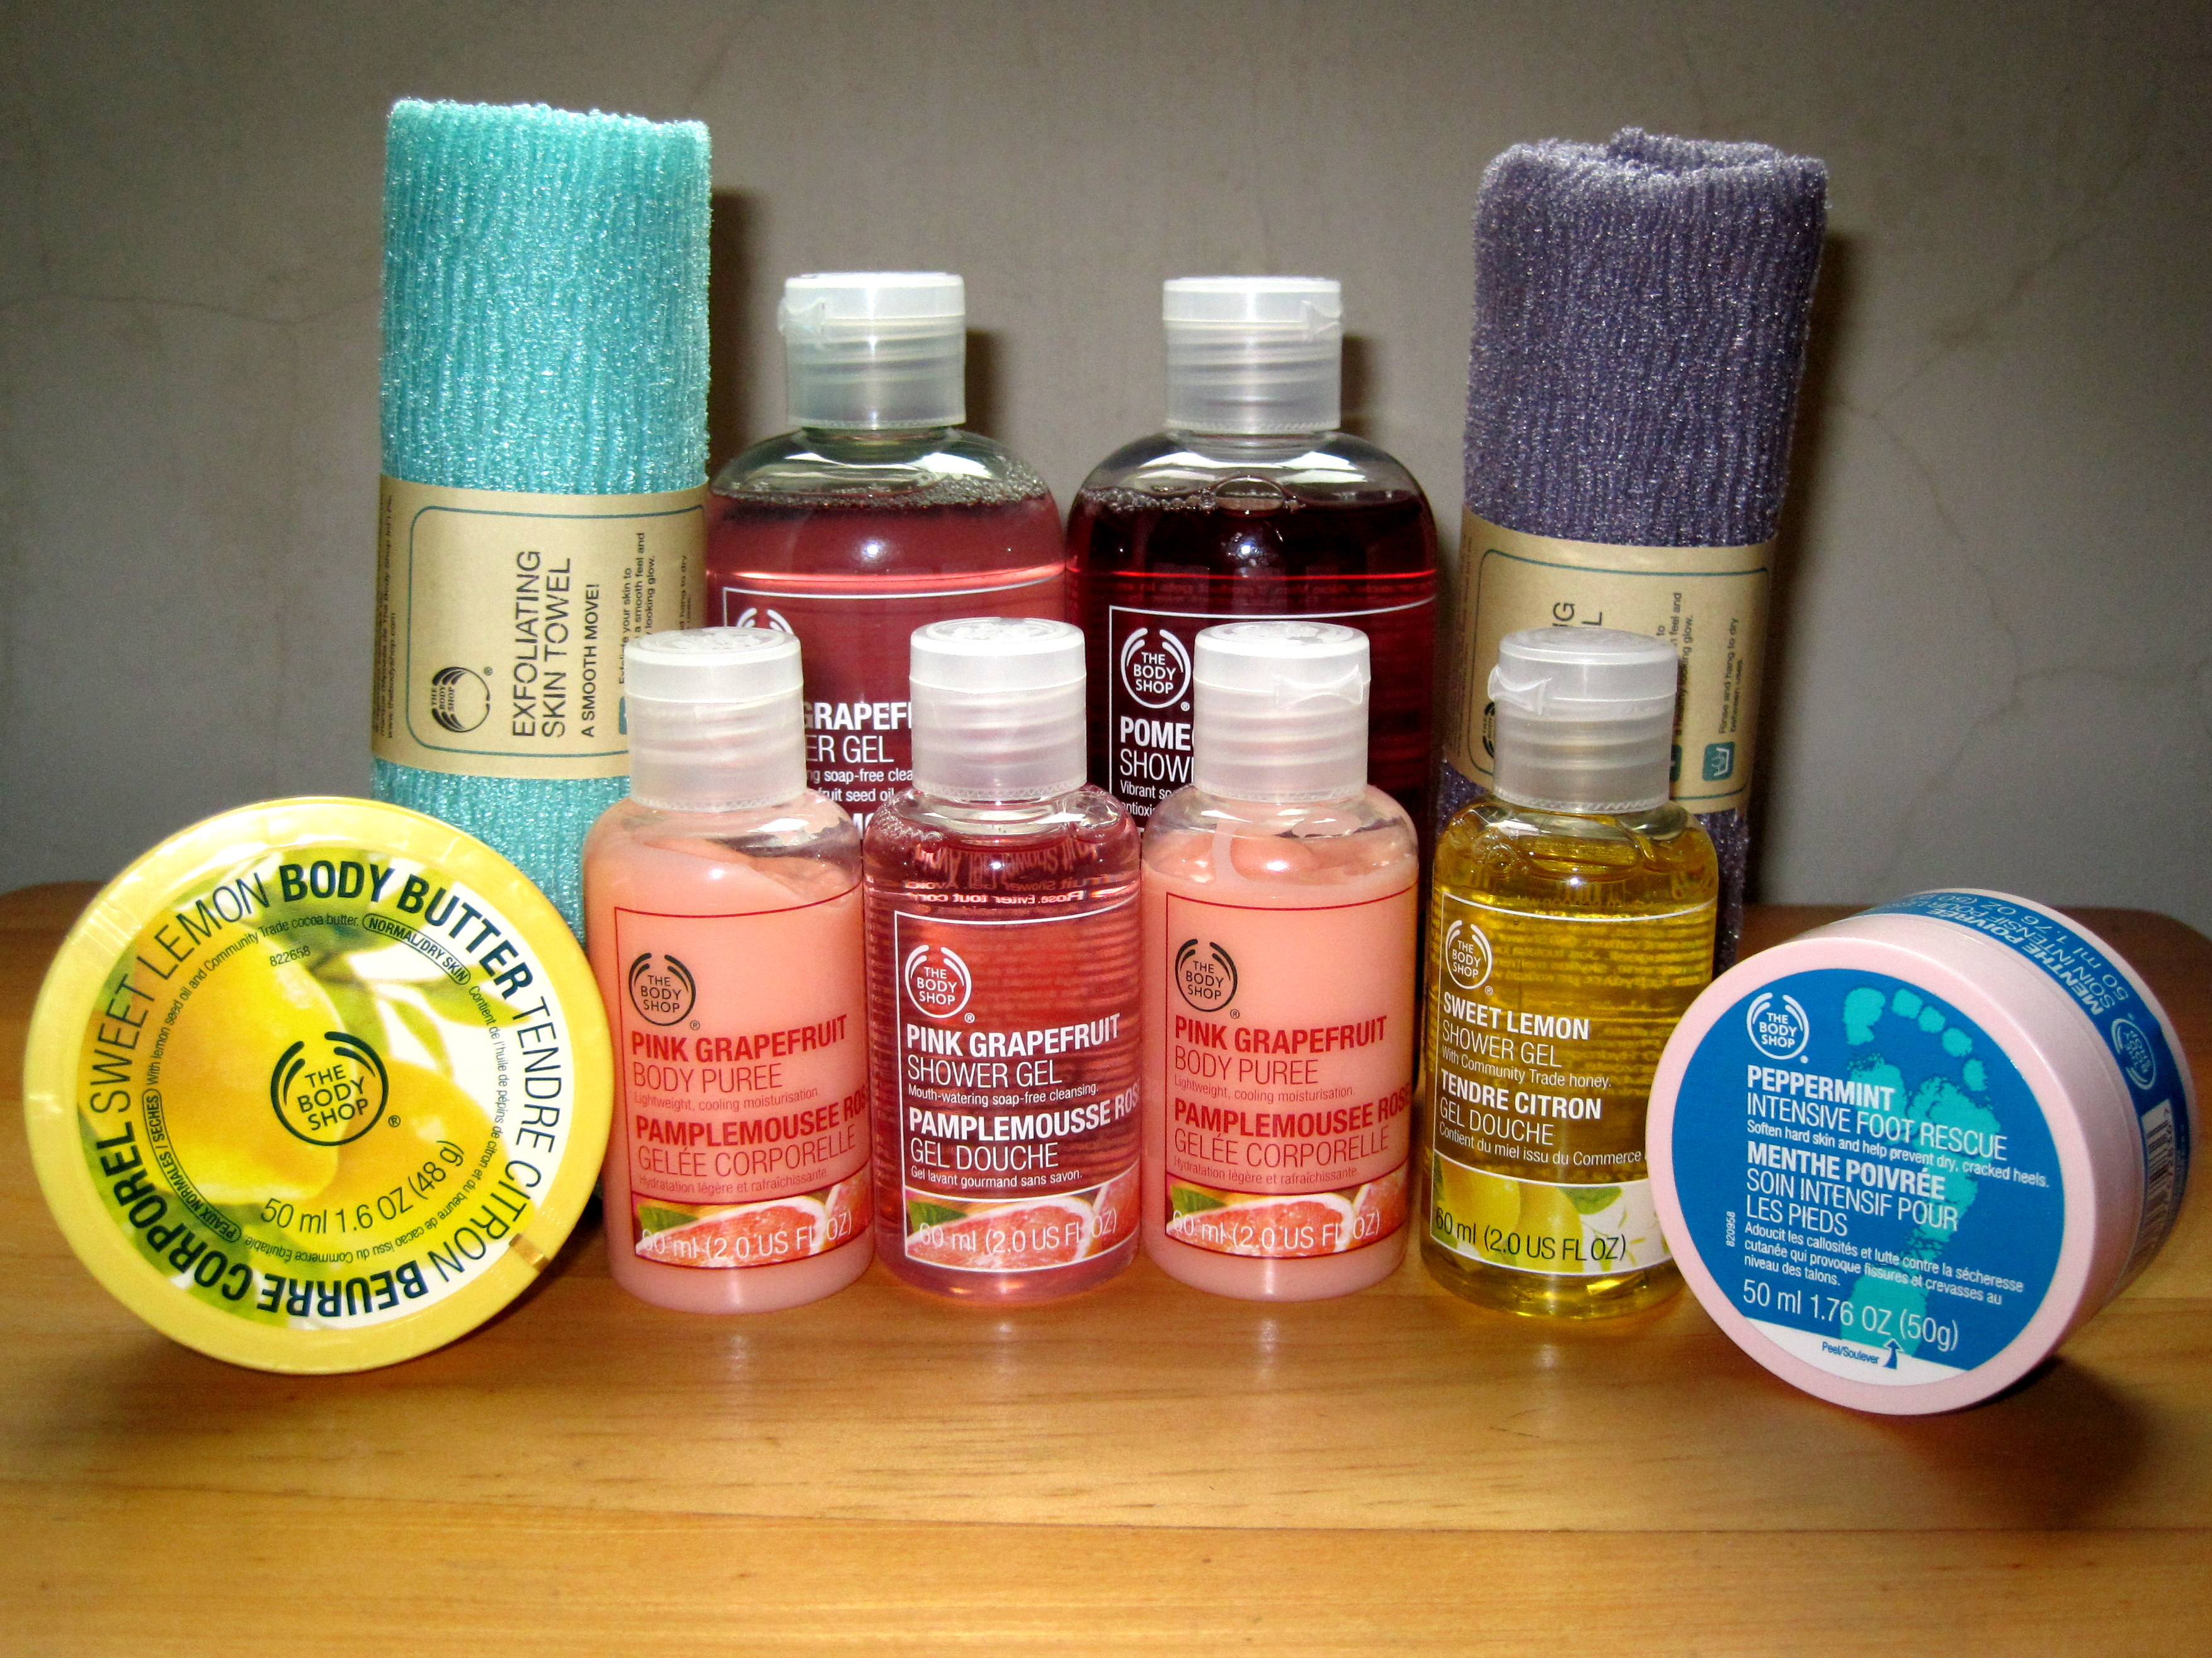 Sale Aftermath: The Body Shop Warehouse Sale (Mini) Haul